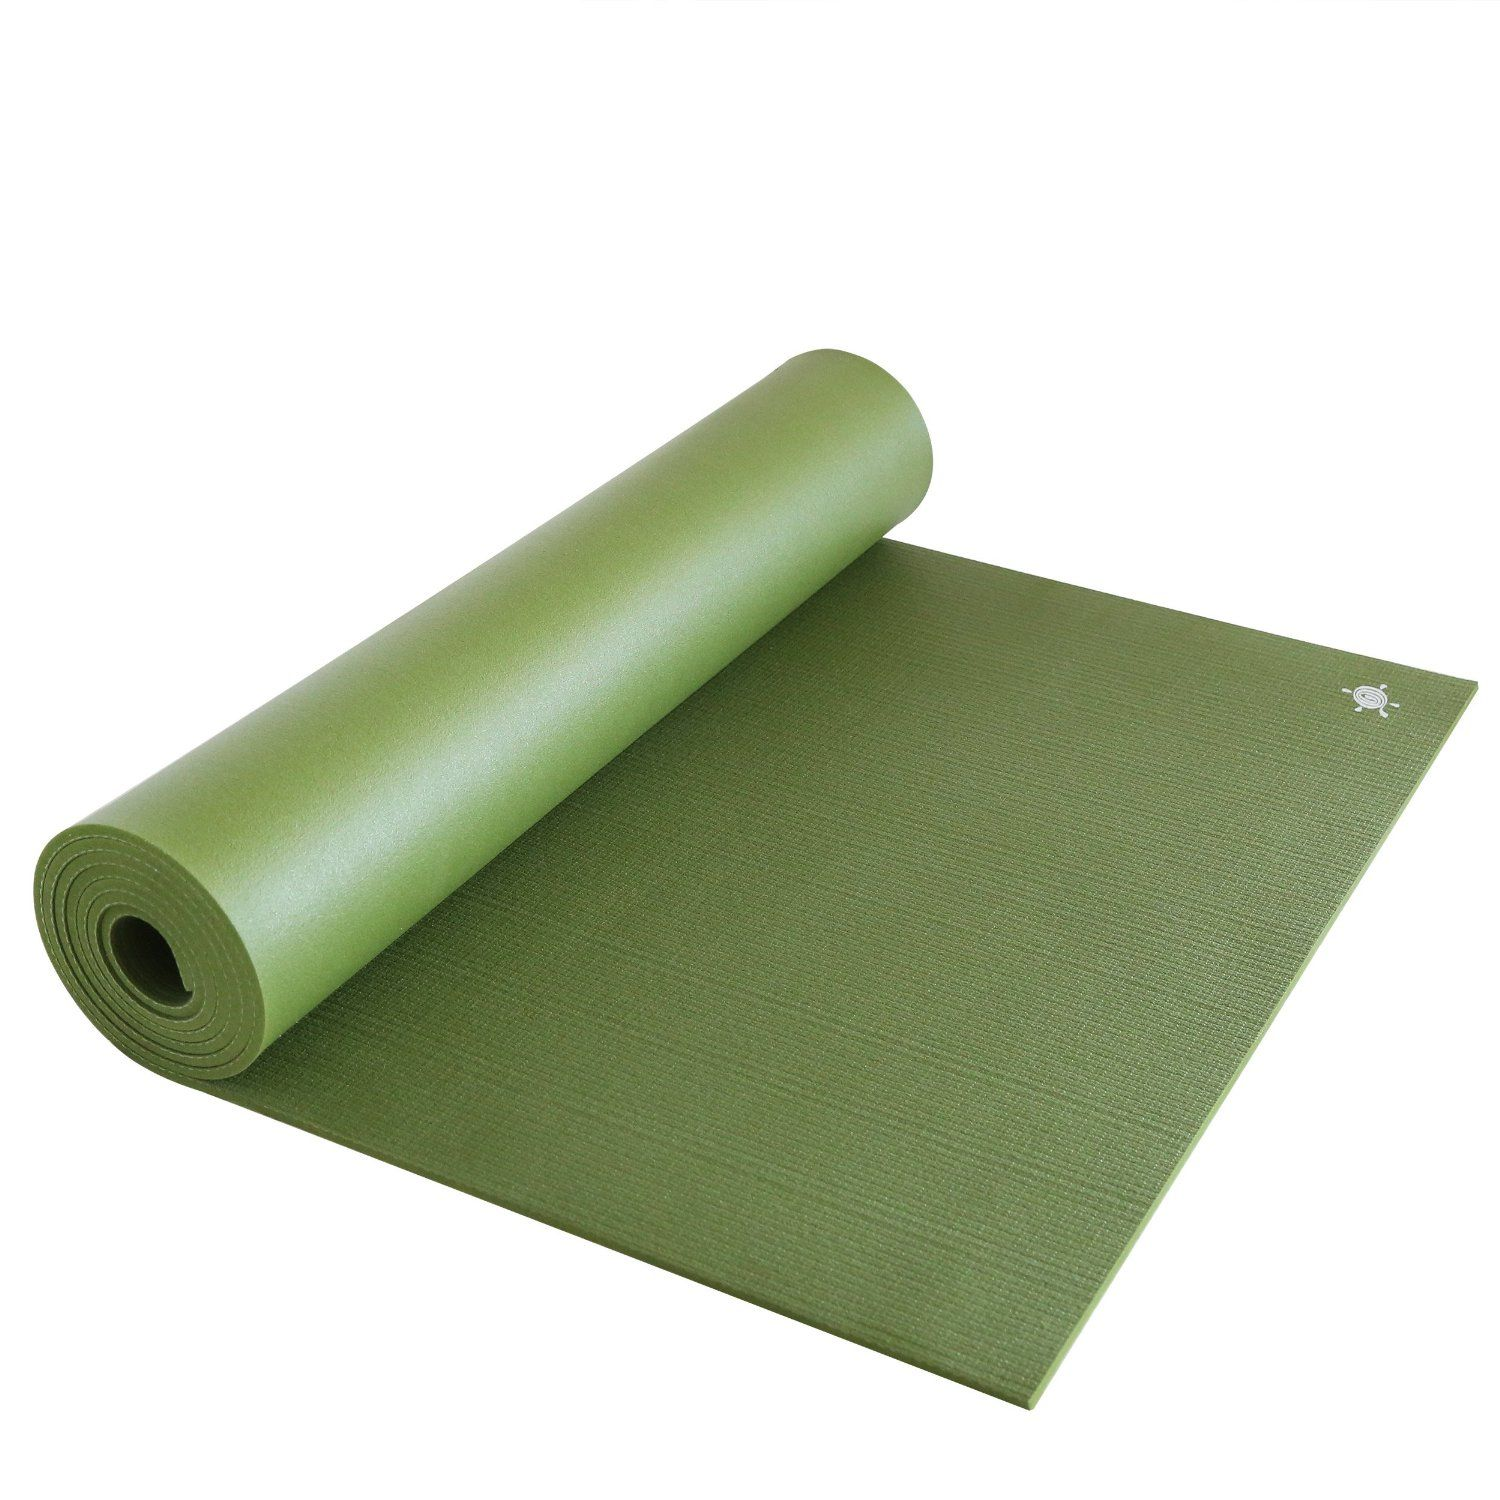 workout mats should yoga degree fifth made you n everyday mat why stretch clothing reasons mens american casual